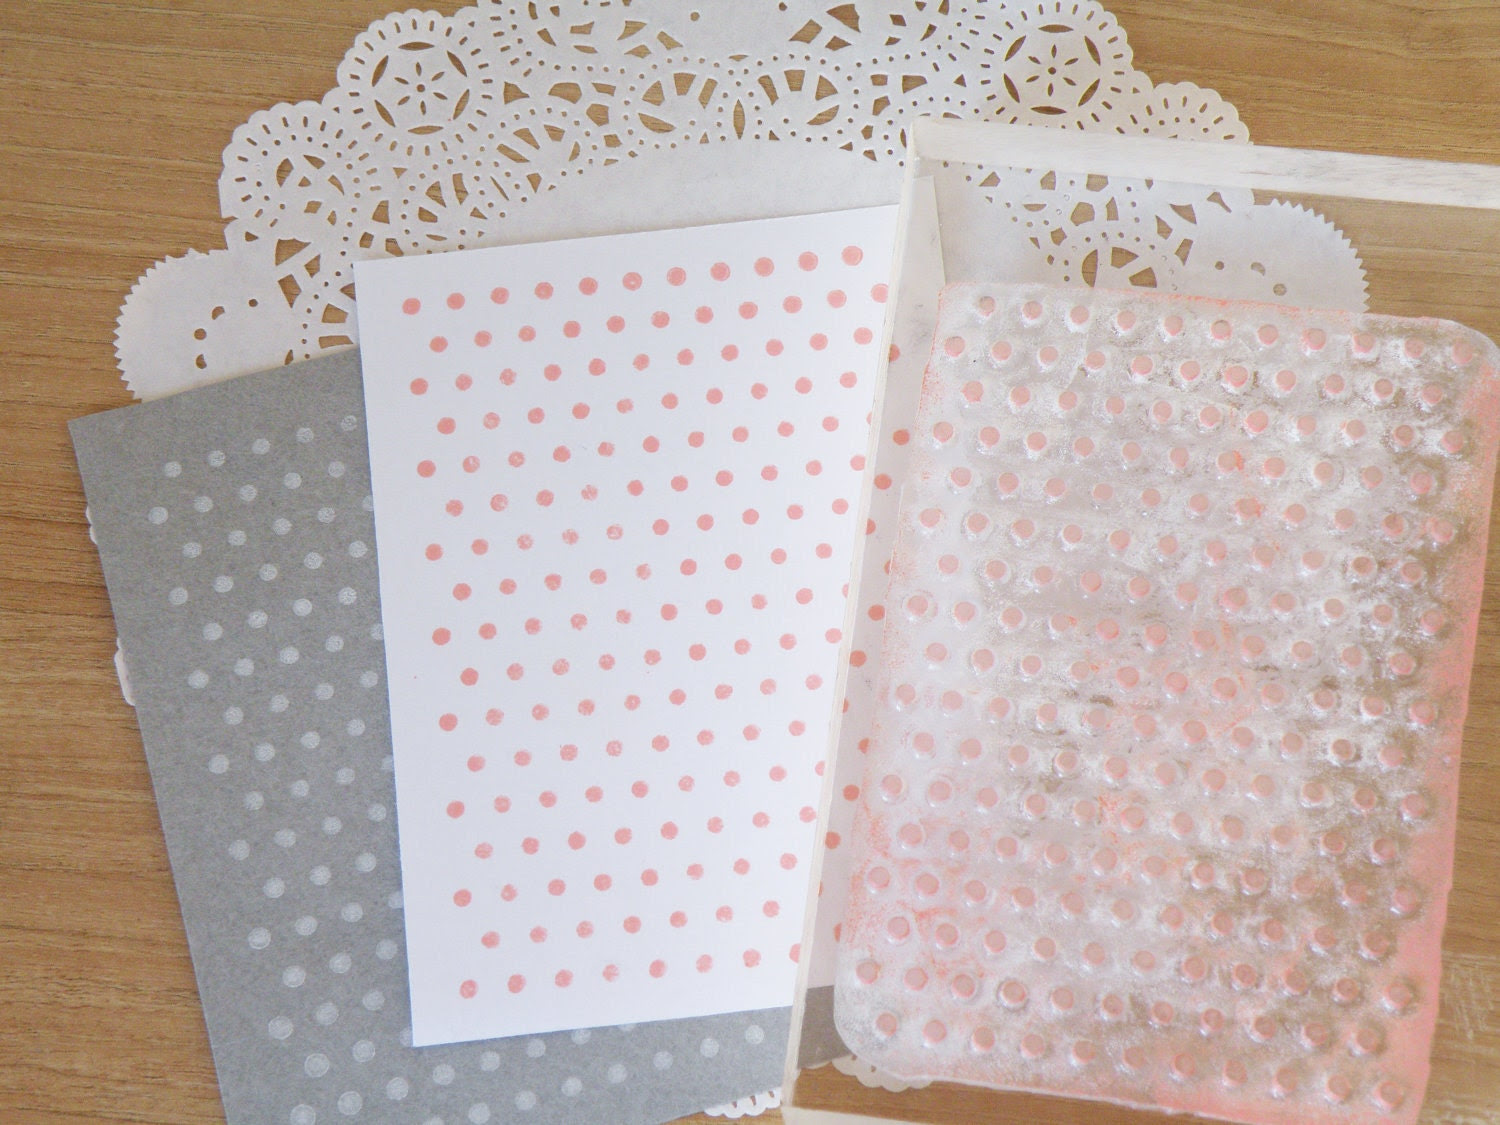 Dotted pattern clear stamp